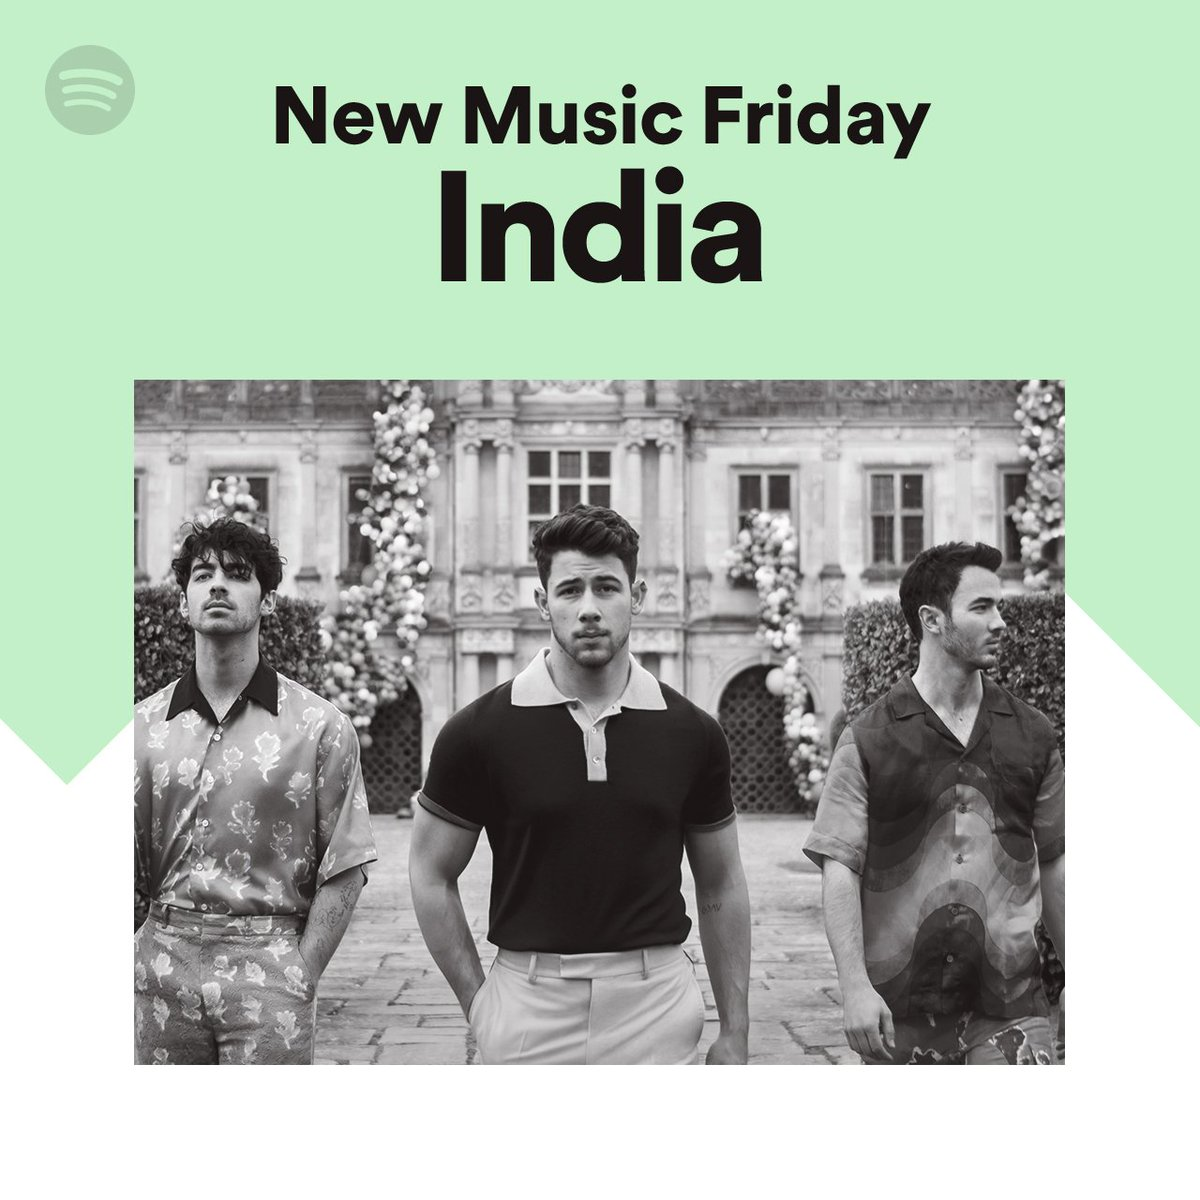 We&#39;re sure there&#39;s a track in here that you&#39;ll want to repeat at least 8926 times.   Check out some fresh tracks, here:  https:// spoti.fi/NMFIndia  &nbsp;   #NewMusicFriday <br>http://pic.twitter.com/iBNmq8naGI